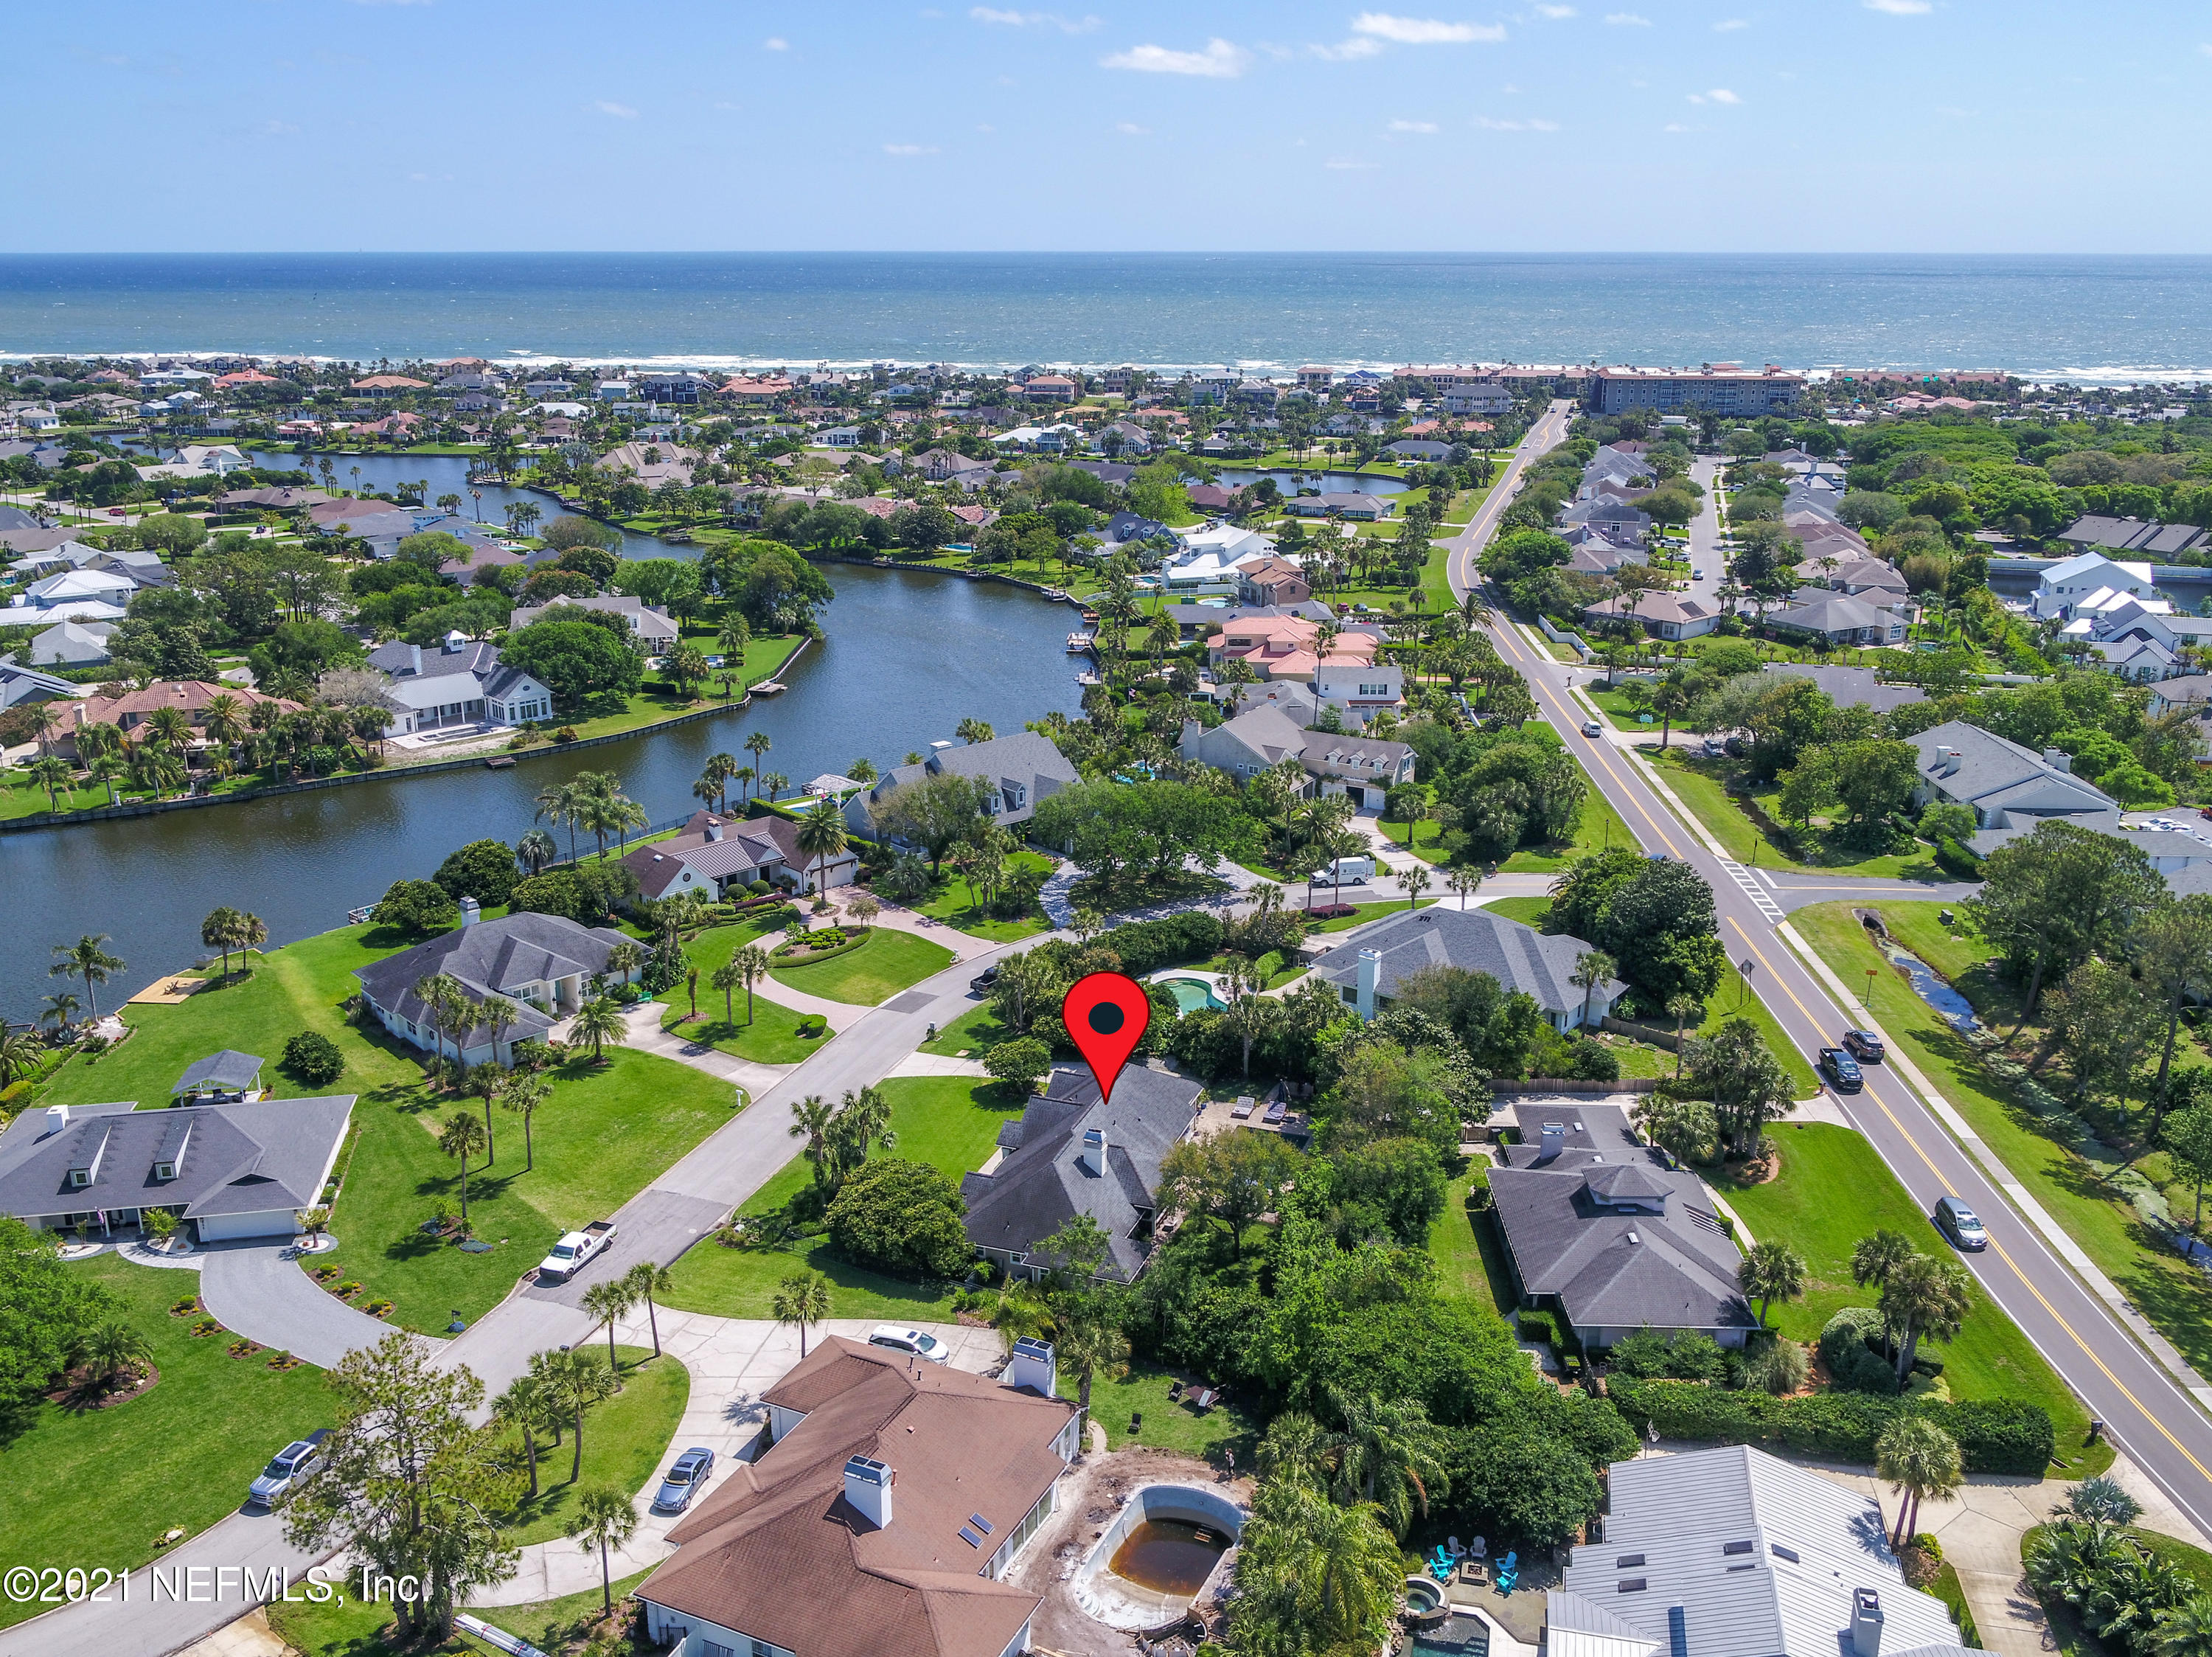 Open House 10-12 Sat May 1st Imagine living the Old Ponte Vedra lifestyle just steps to the beach & the Ponte Vedra Lodge & Club & Ponte Vedra Inn & Club.  This updated one level home has it all: marble & granite counter tops, walnut finished bamboo wide planked floors. 9+' smooth ceilings, Owner's suite w/ marble floors, shower & vanities, custom closets t/out, & recessed lighting throughout.  Enjoy the indoor /outdoor Florida lifestyle from your extra large backyard w/ saltwater pool, hot tub w/ a wonderful sounding waterfall.  Large covered lanai w/ outside pool bath & shower.  Sellers even put in extensive security system that conveys. This is a true entertainers delight in the heart of Old Ponte Vedra. A Rated St Johns County school system.  FULL GOLF INITIATION INCLUDED to MLCC. Professional photos coming this week